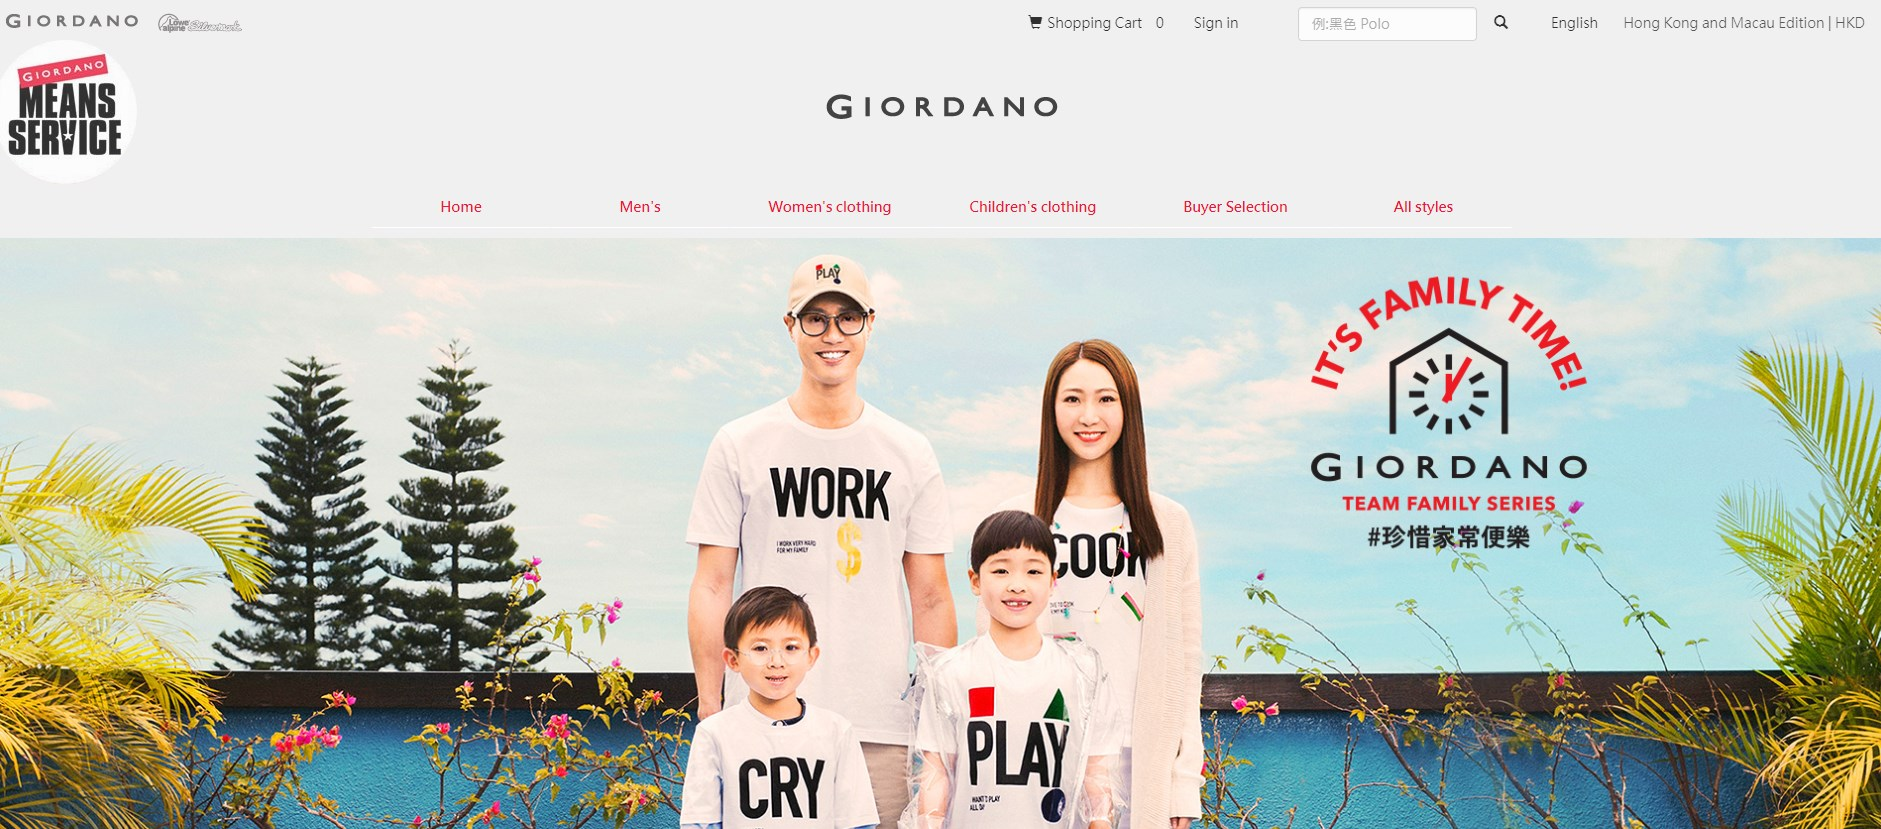 Another great step backwards for feminism': Giordano faces